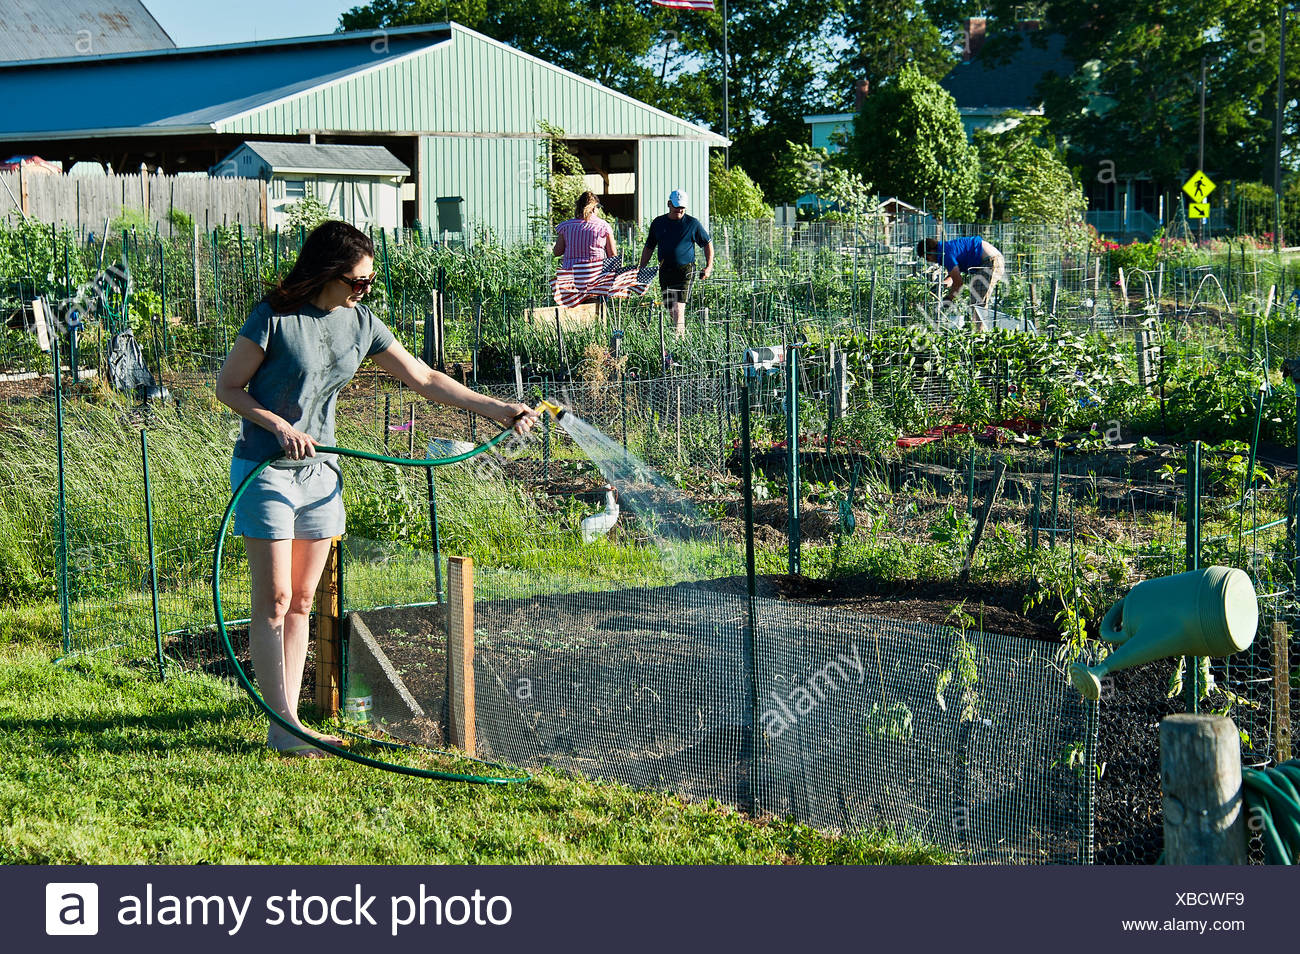 Woman watering her plot in a community garden. - Stock Image